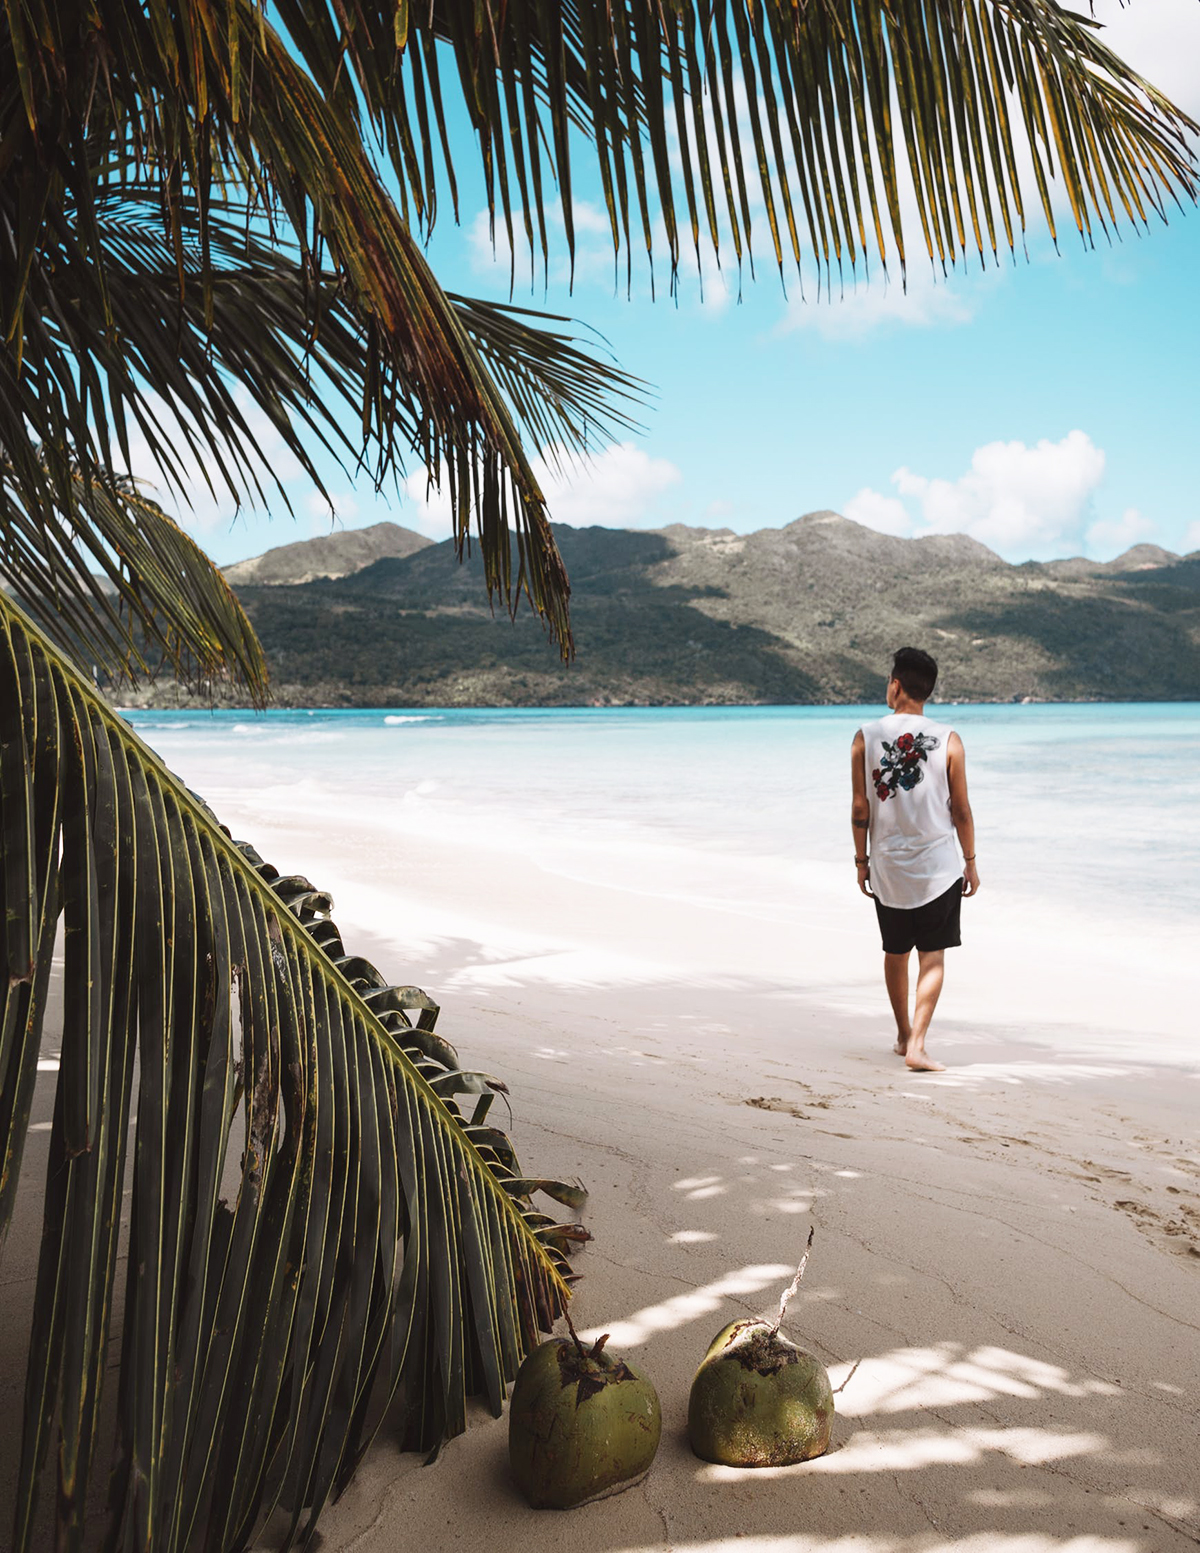 The Islander and Me and other poem